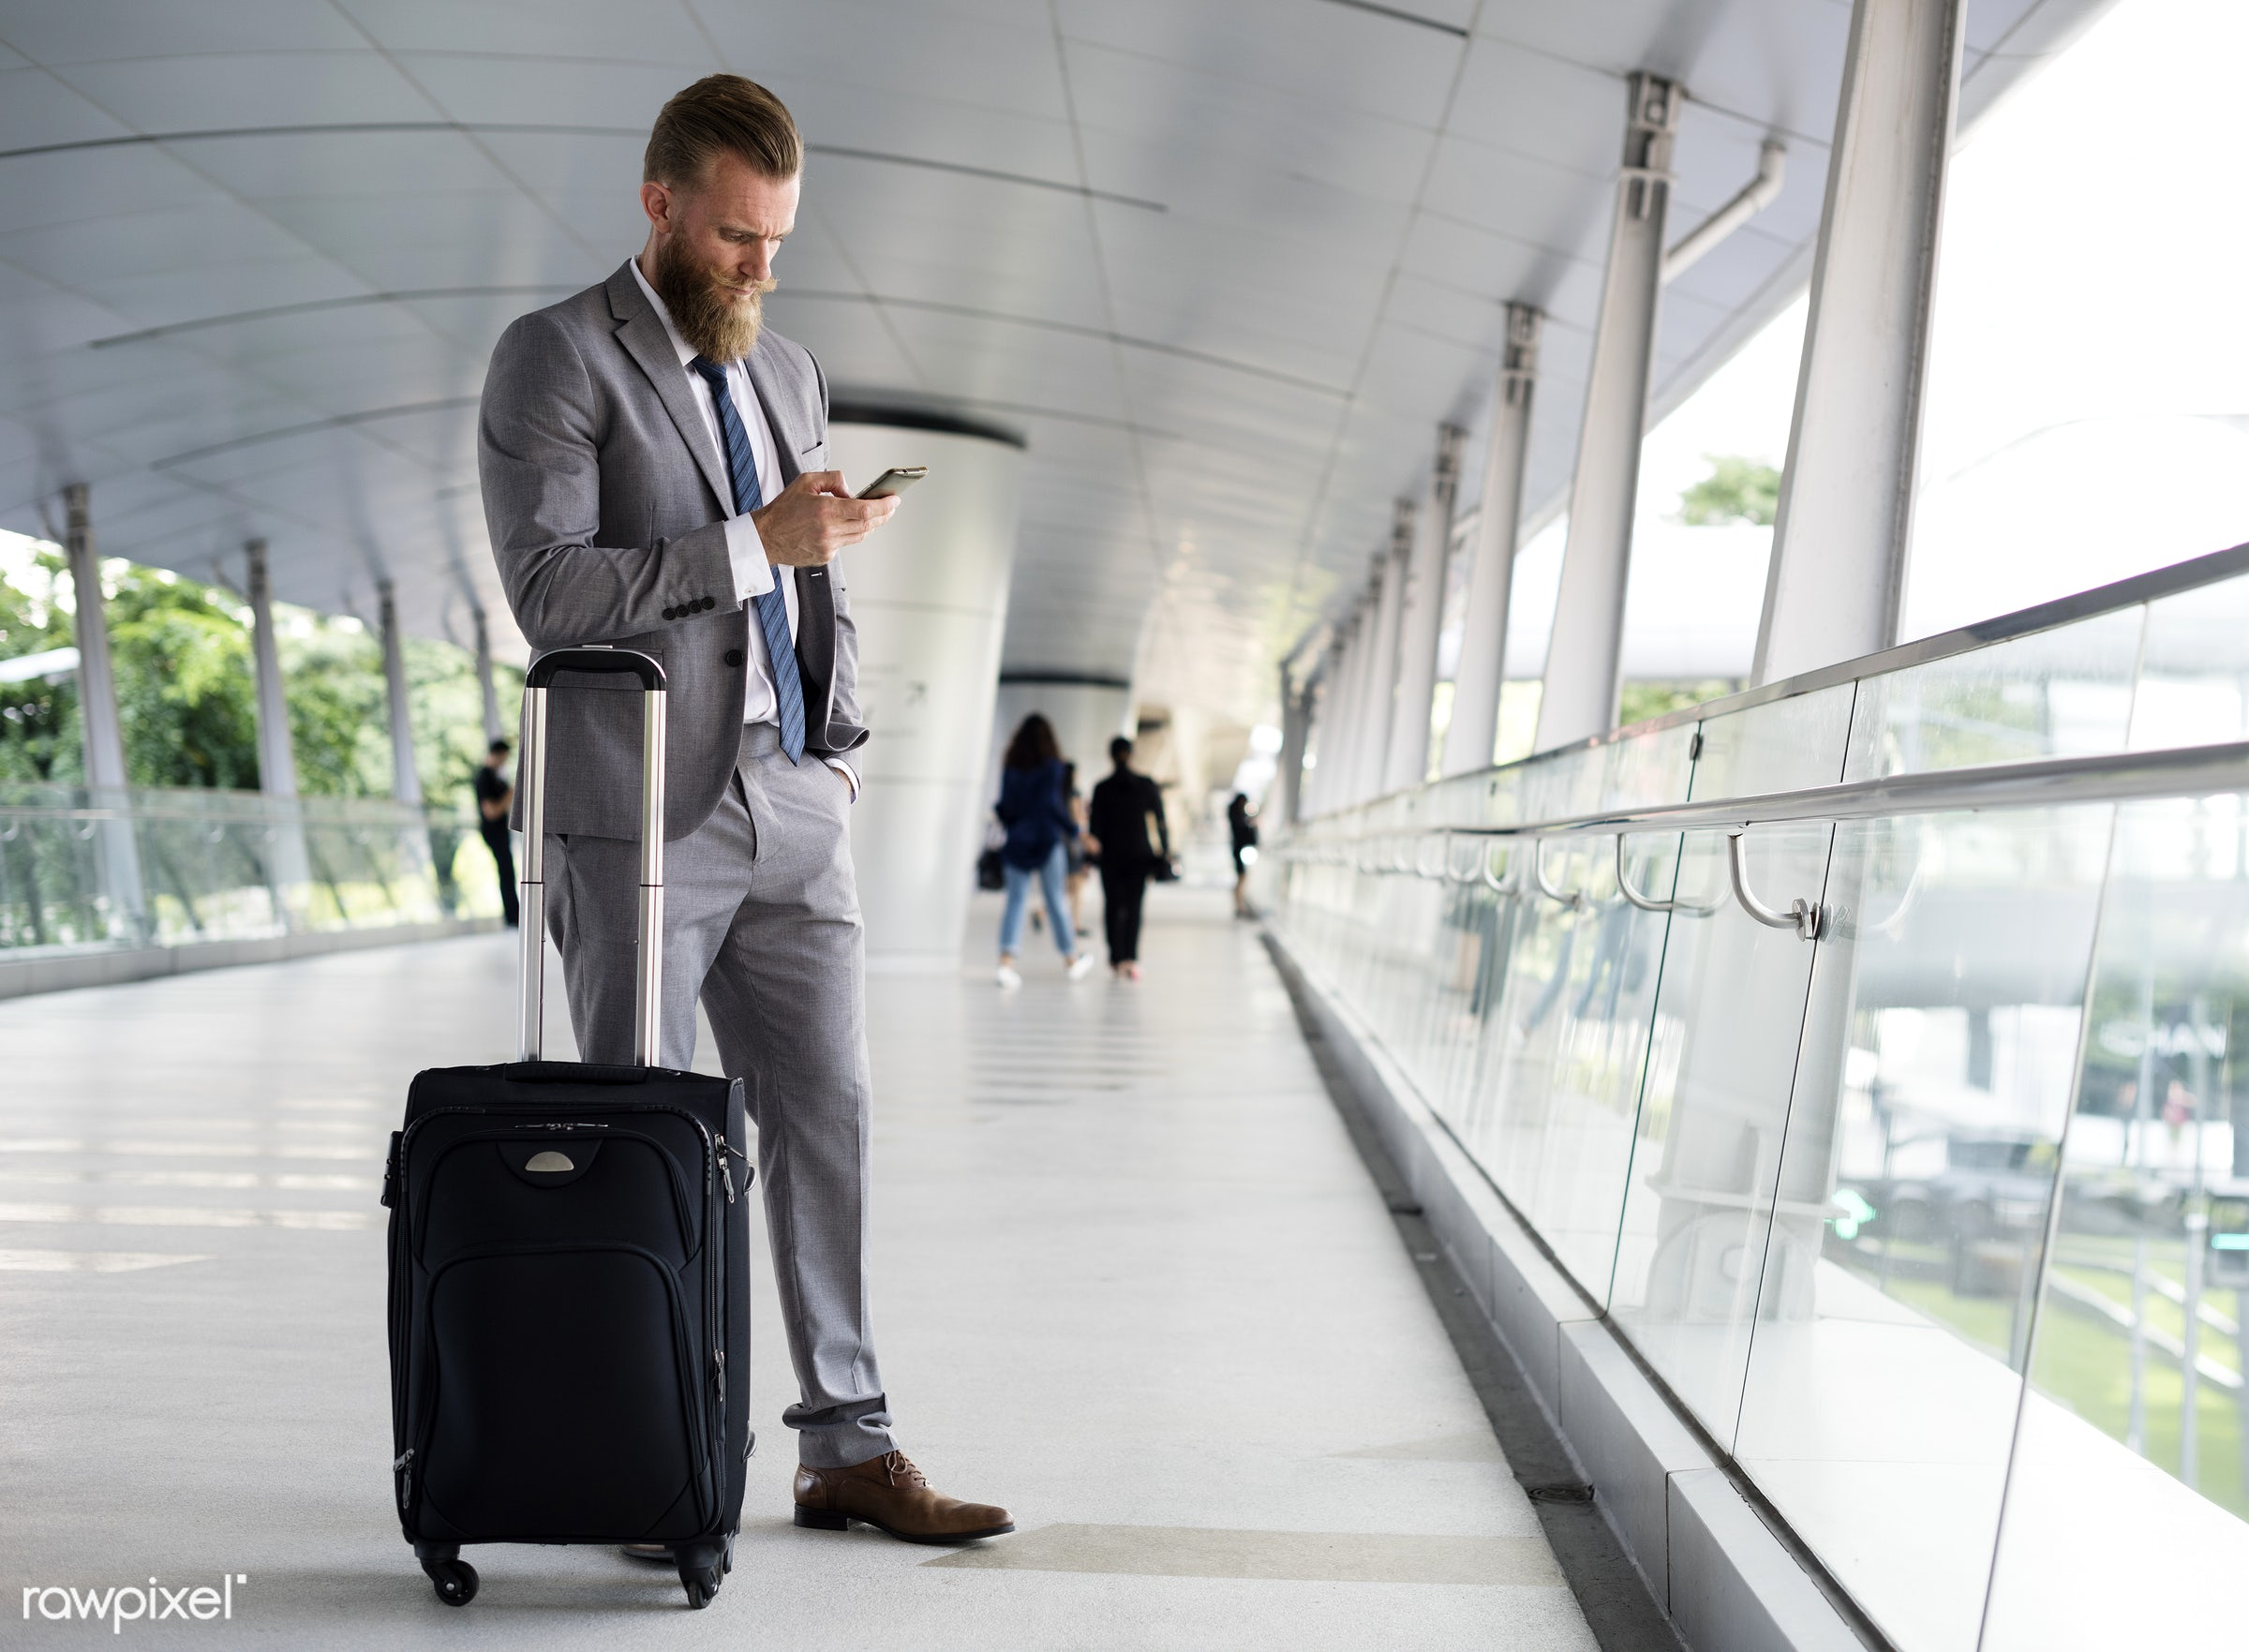 expression, business trip, update, face, call, person, phone, suit and tie, white collar worker, busy, indoors, luggage,...